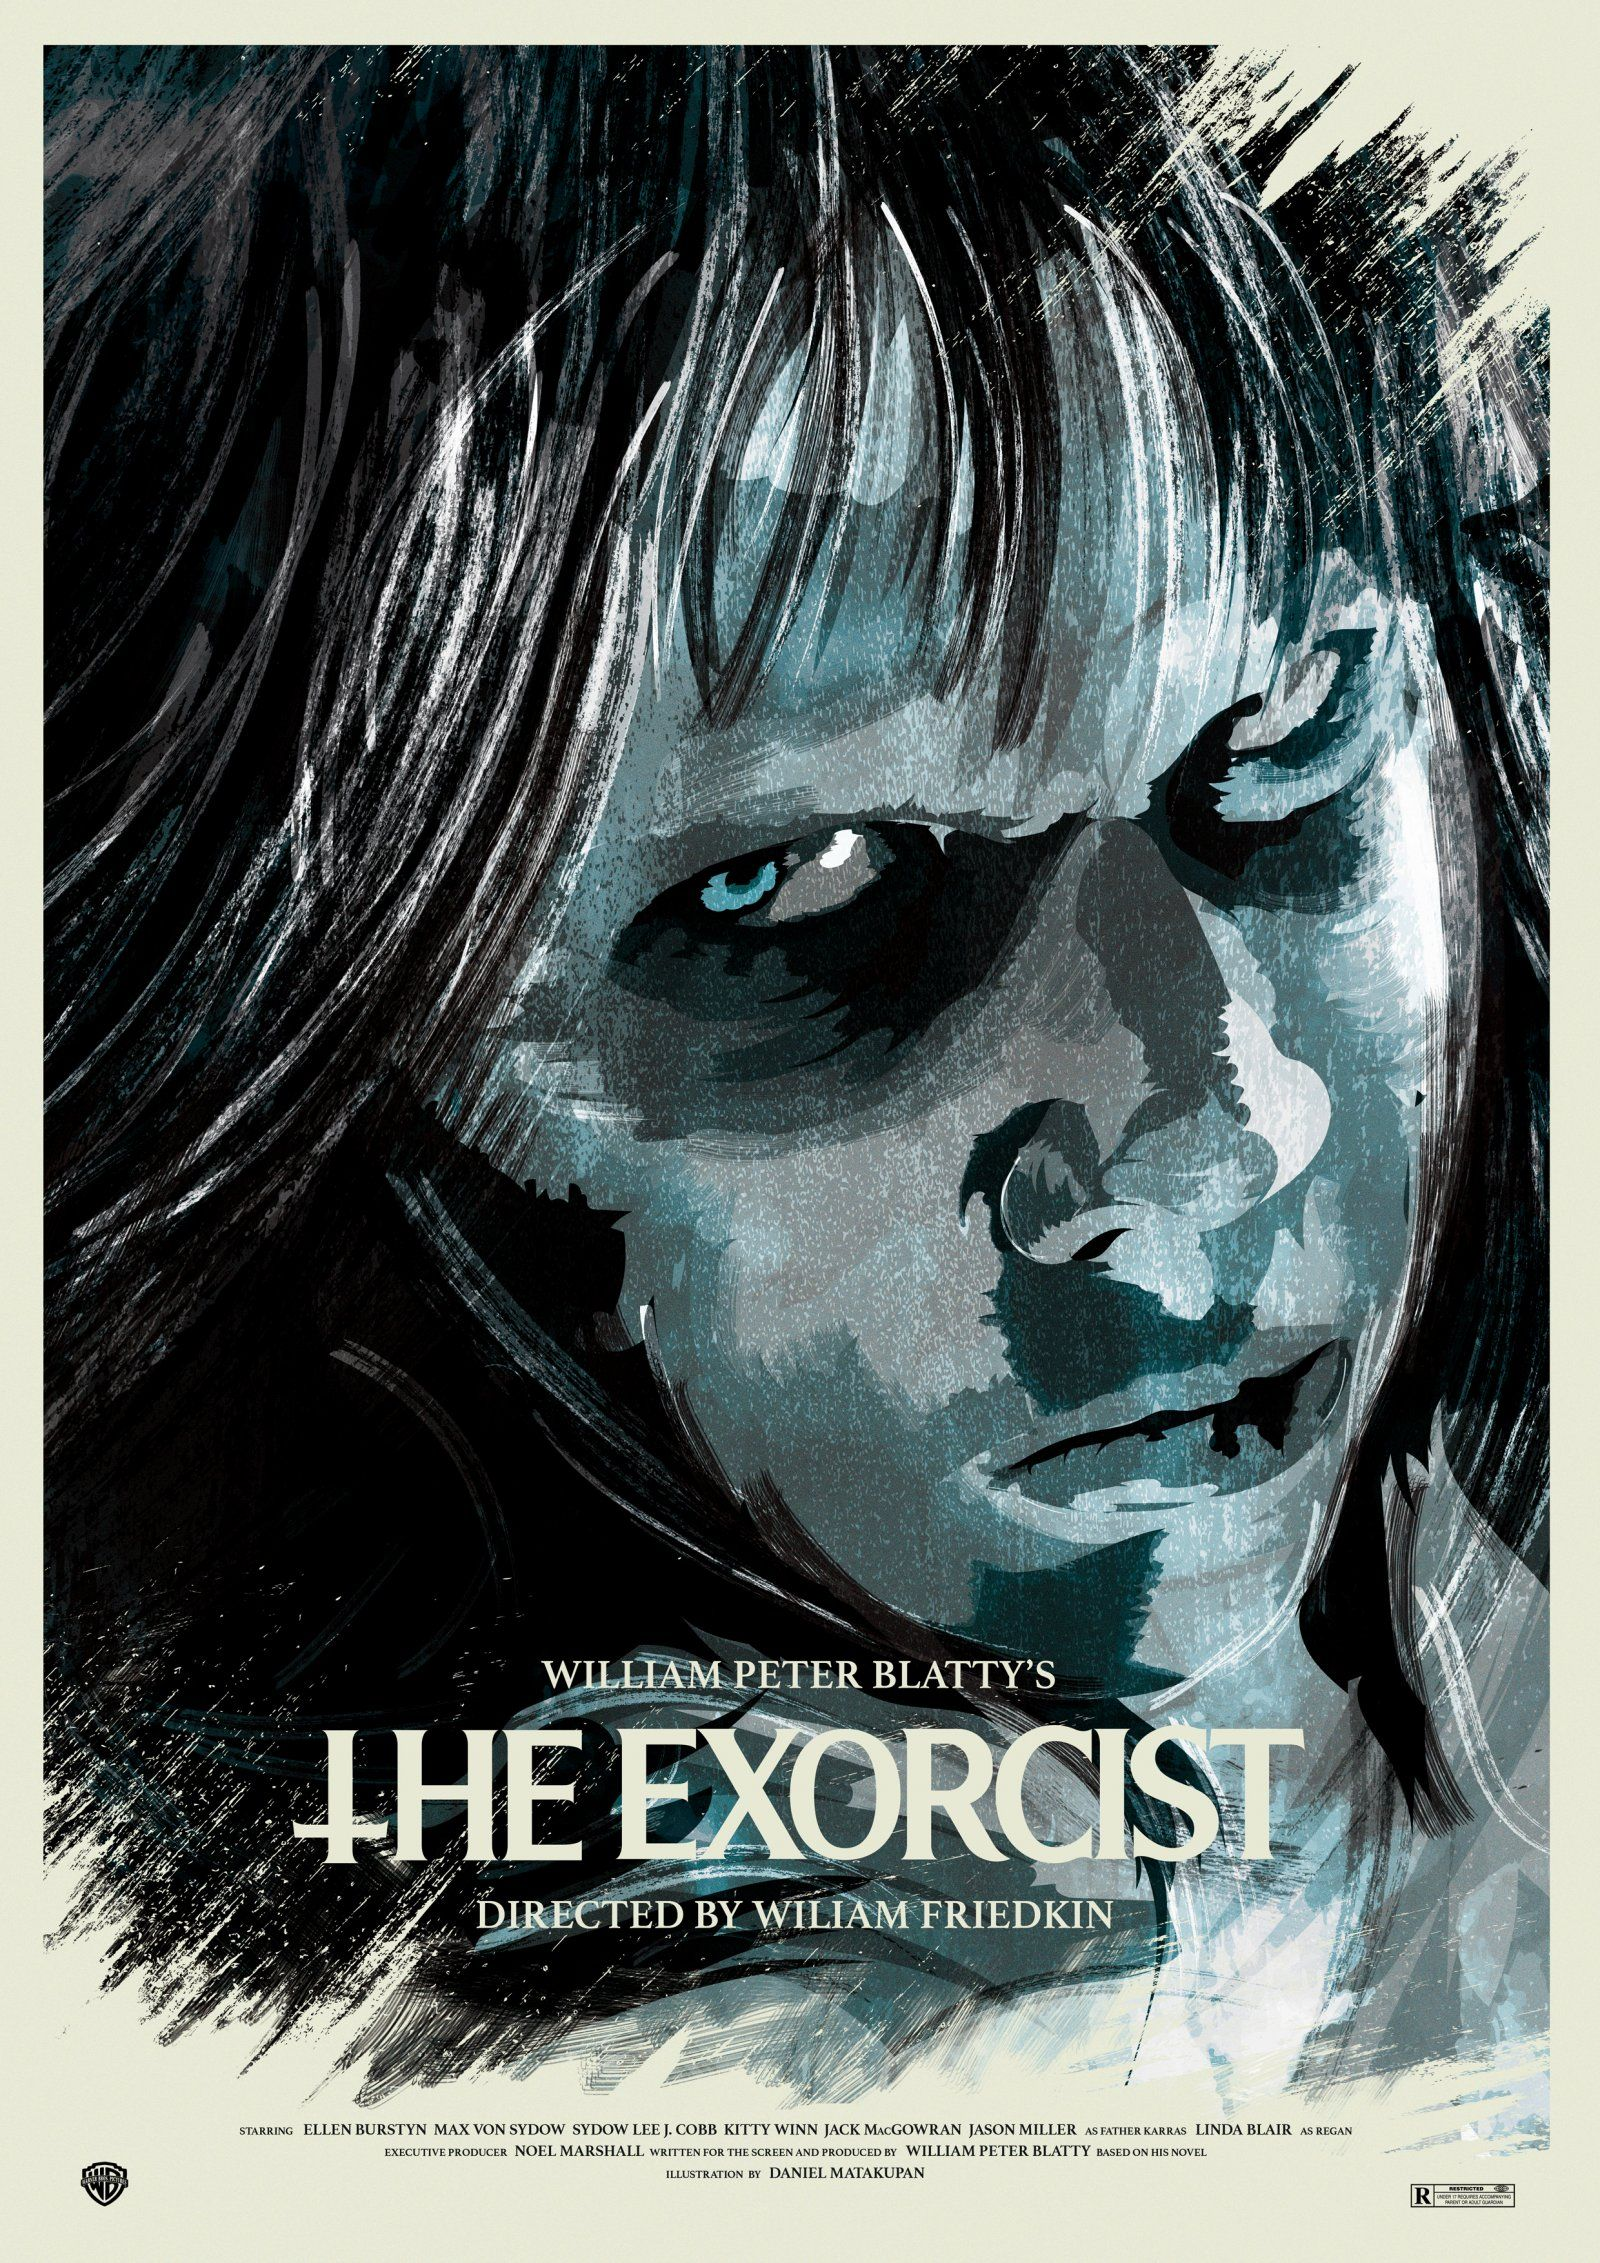 The Exorcist 1973 Hd Wallpaper From Gallsourcecom El